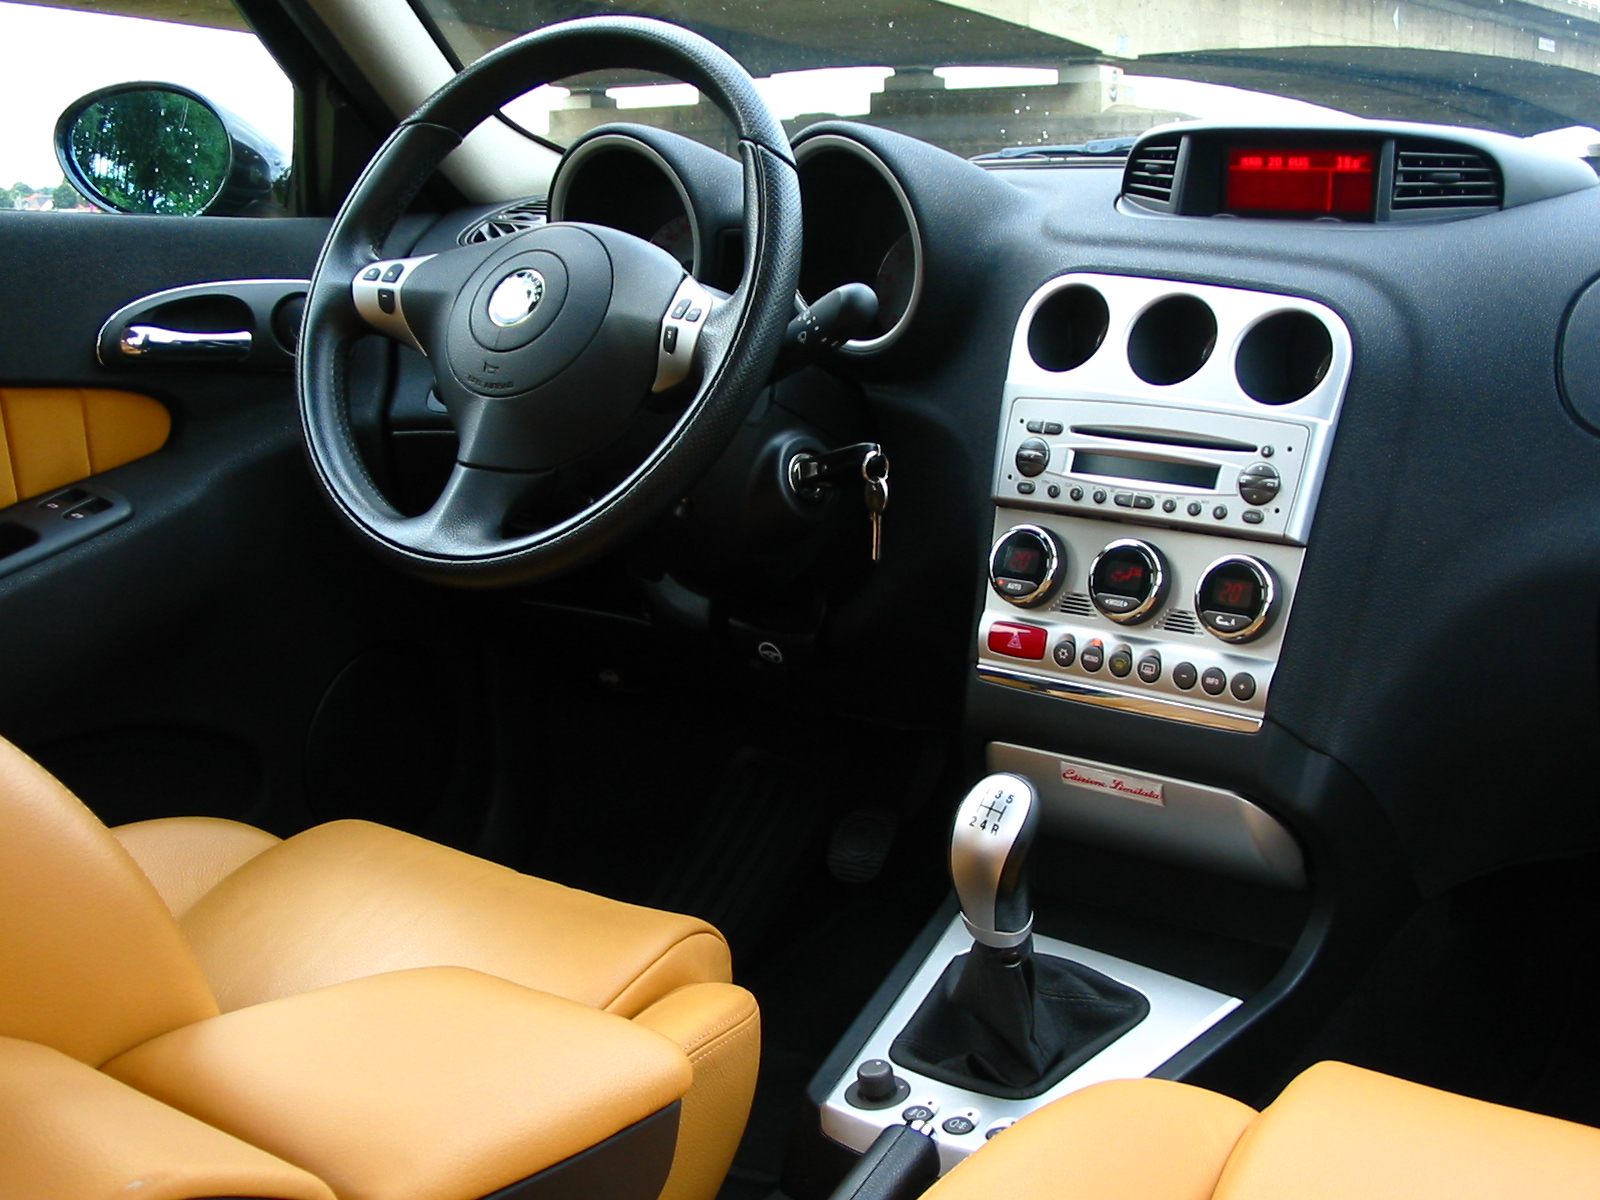 Alfa 147 Interieur File Alfa Romeo 156 2nd Series Interior 2 Jpg Wikimedia Commons